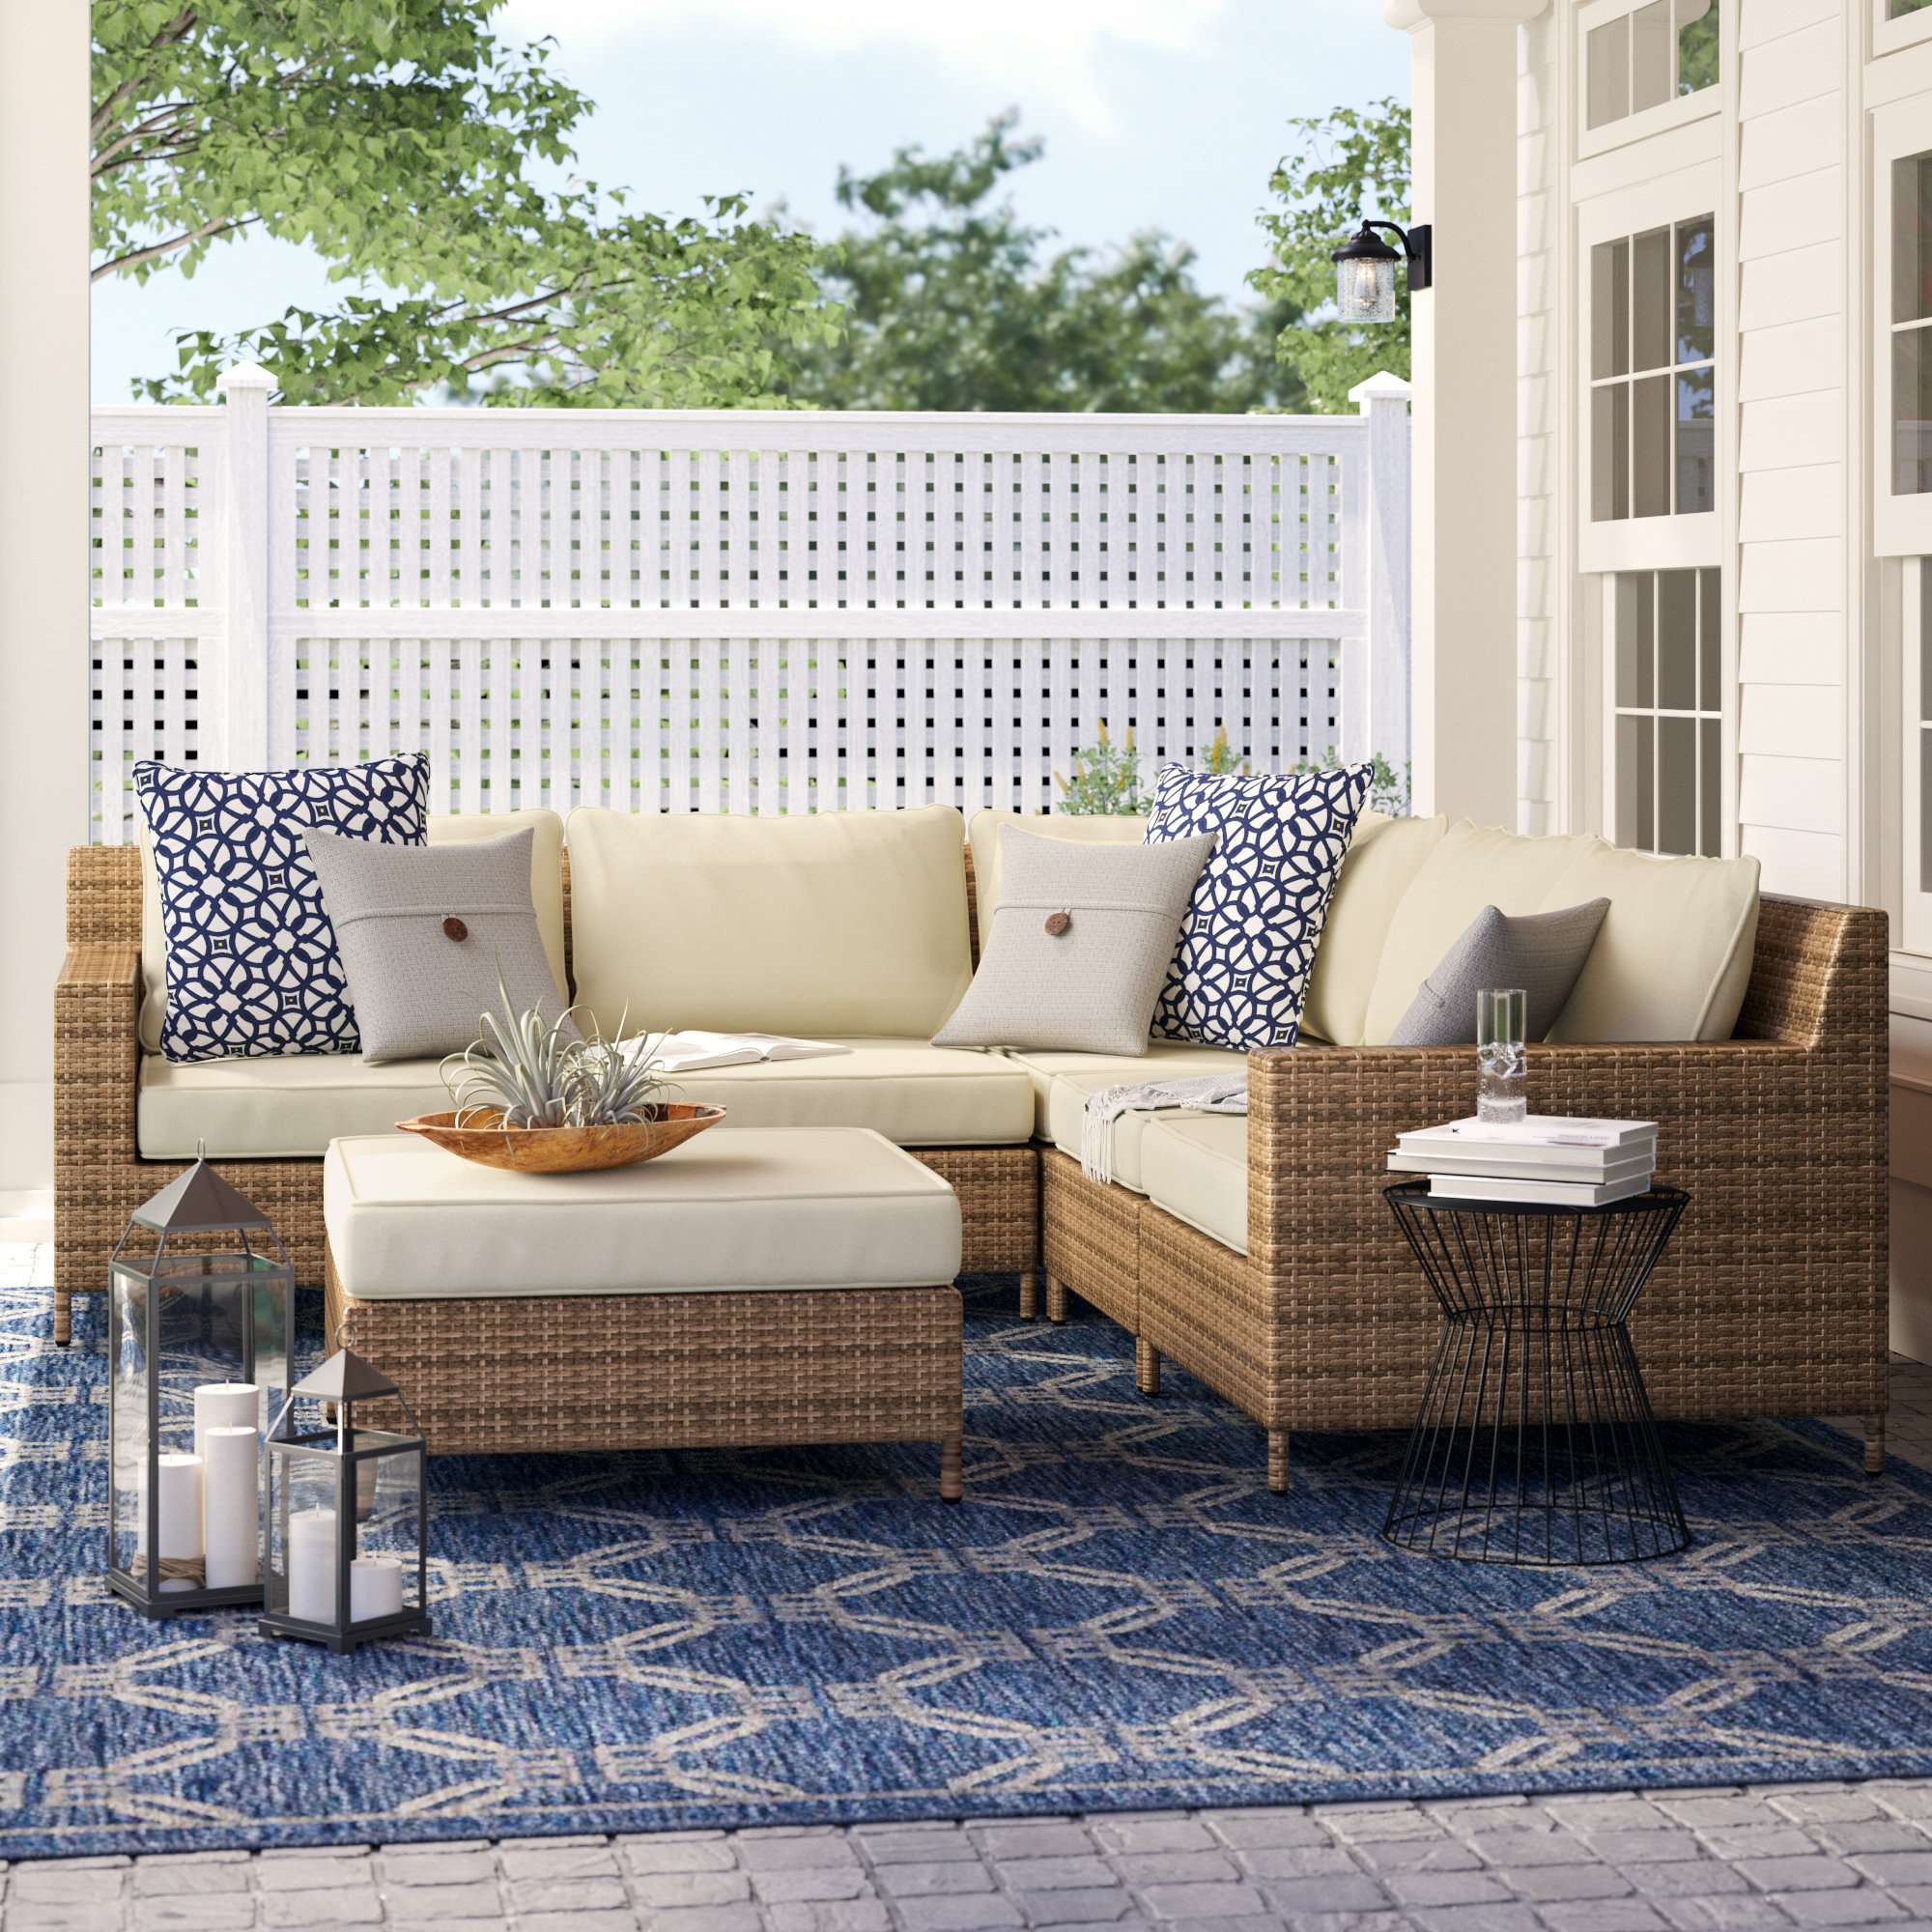 Hillcrest Patio Sectional With Cushions Regarding Recent Belton Patio Sofas With Cushions (Gallery 13 of 25)